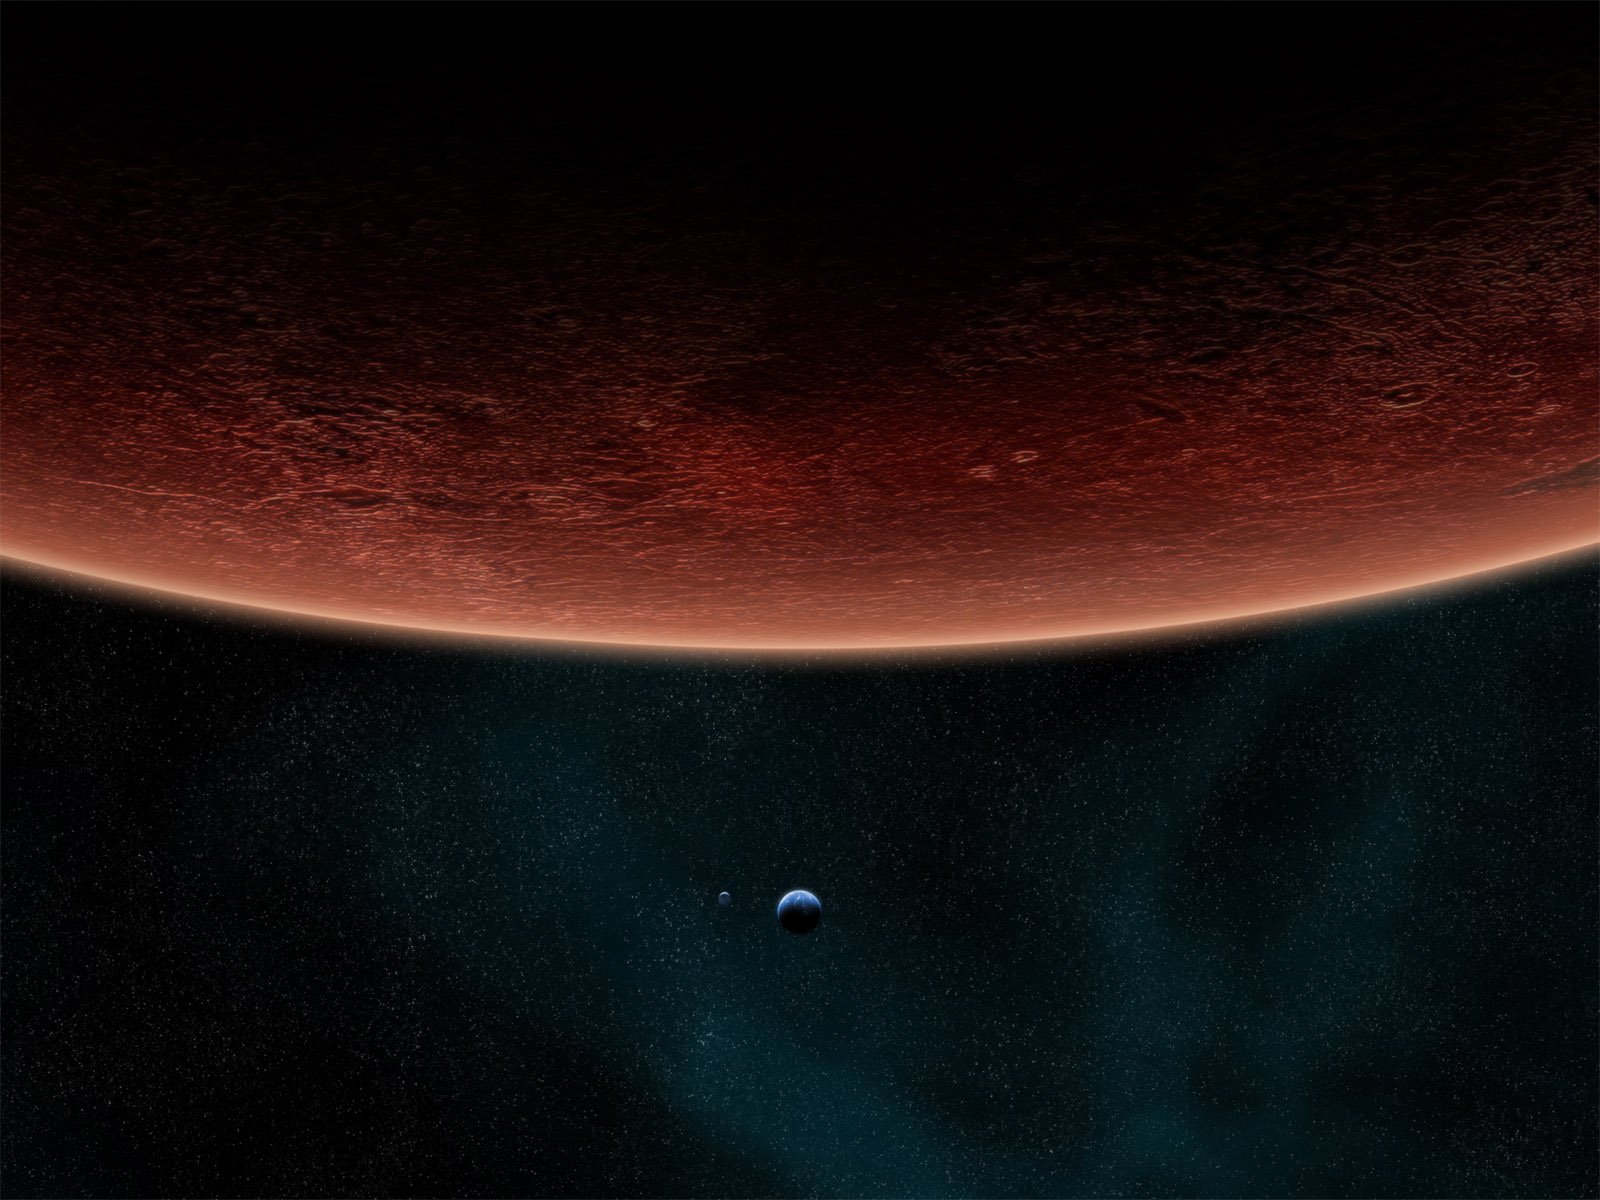 Planets computer wallpapers desktop backgrounds - Space wallpaper 2160x1920 ...